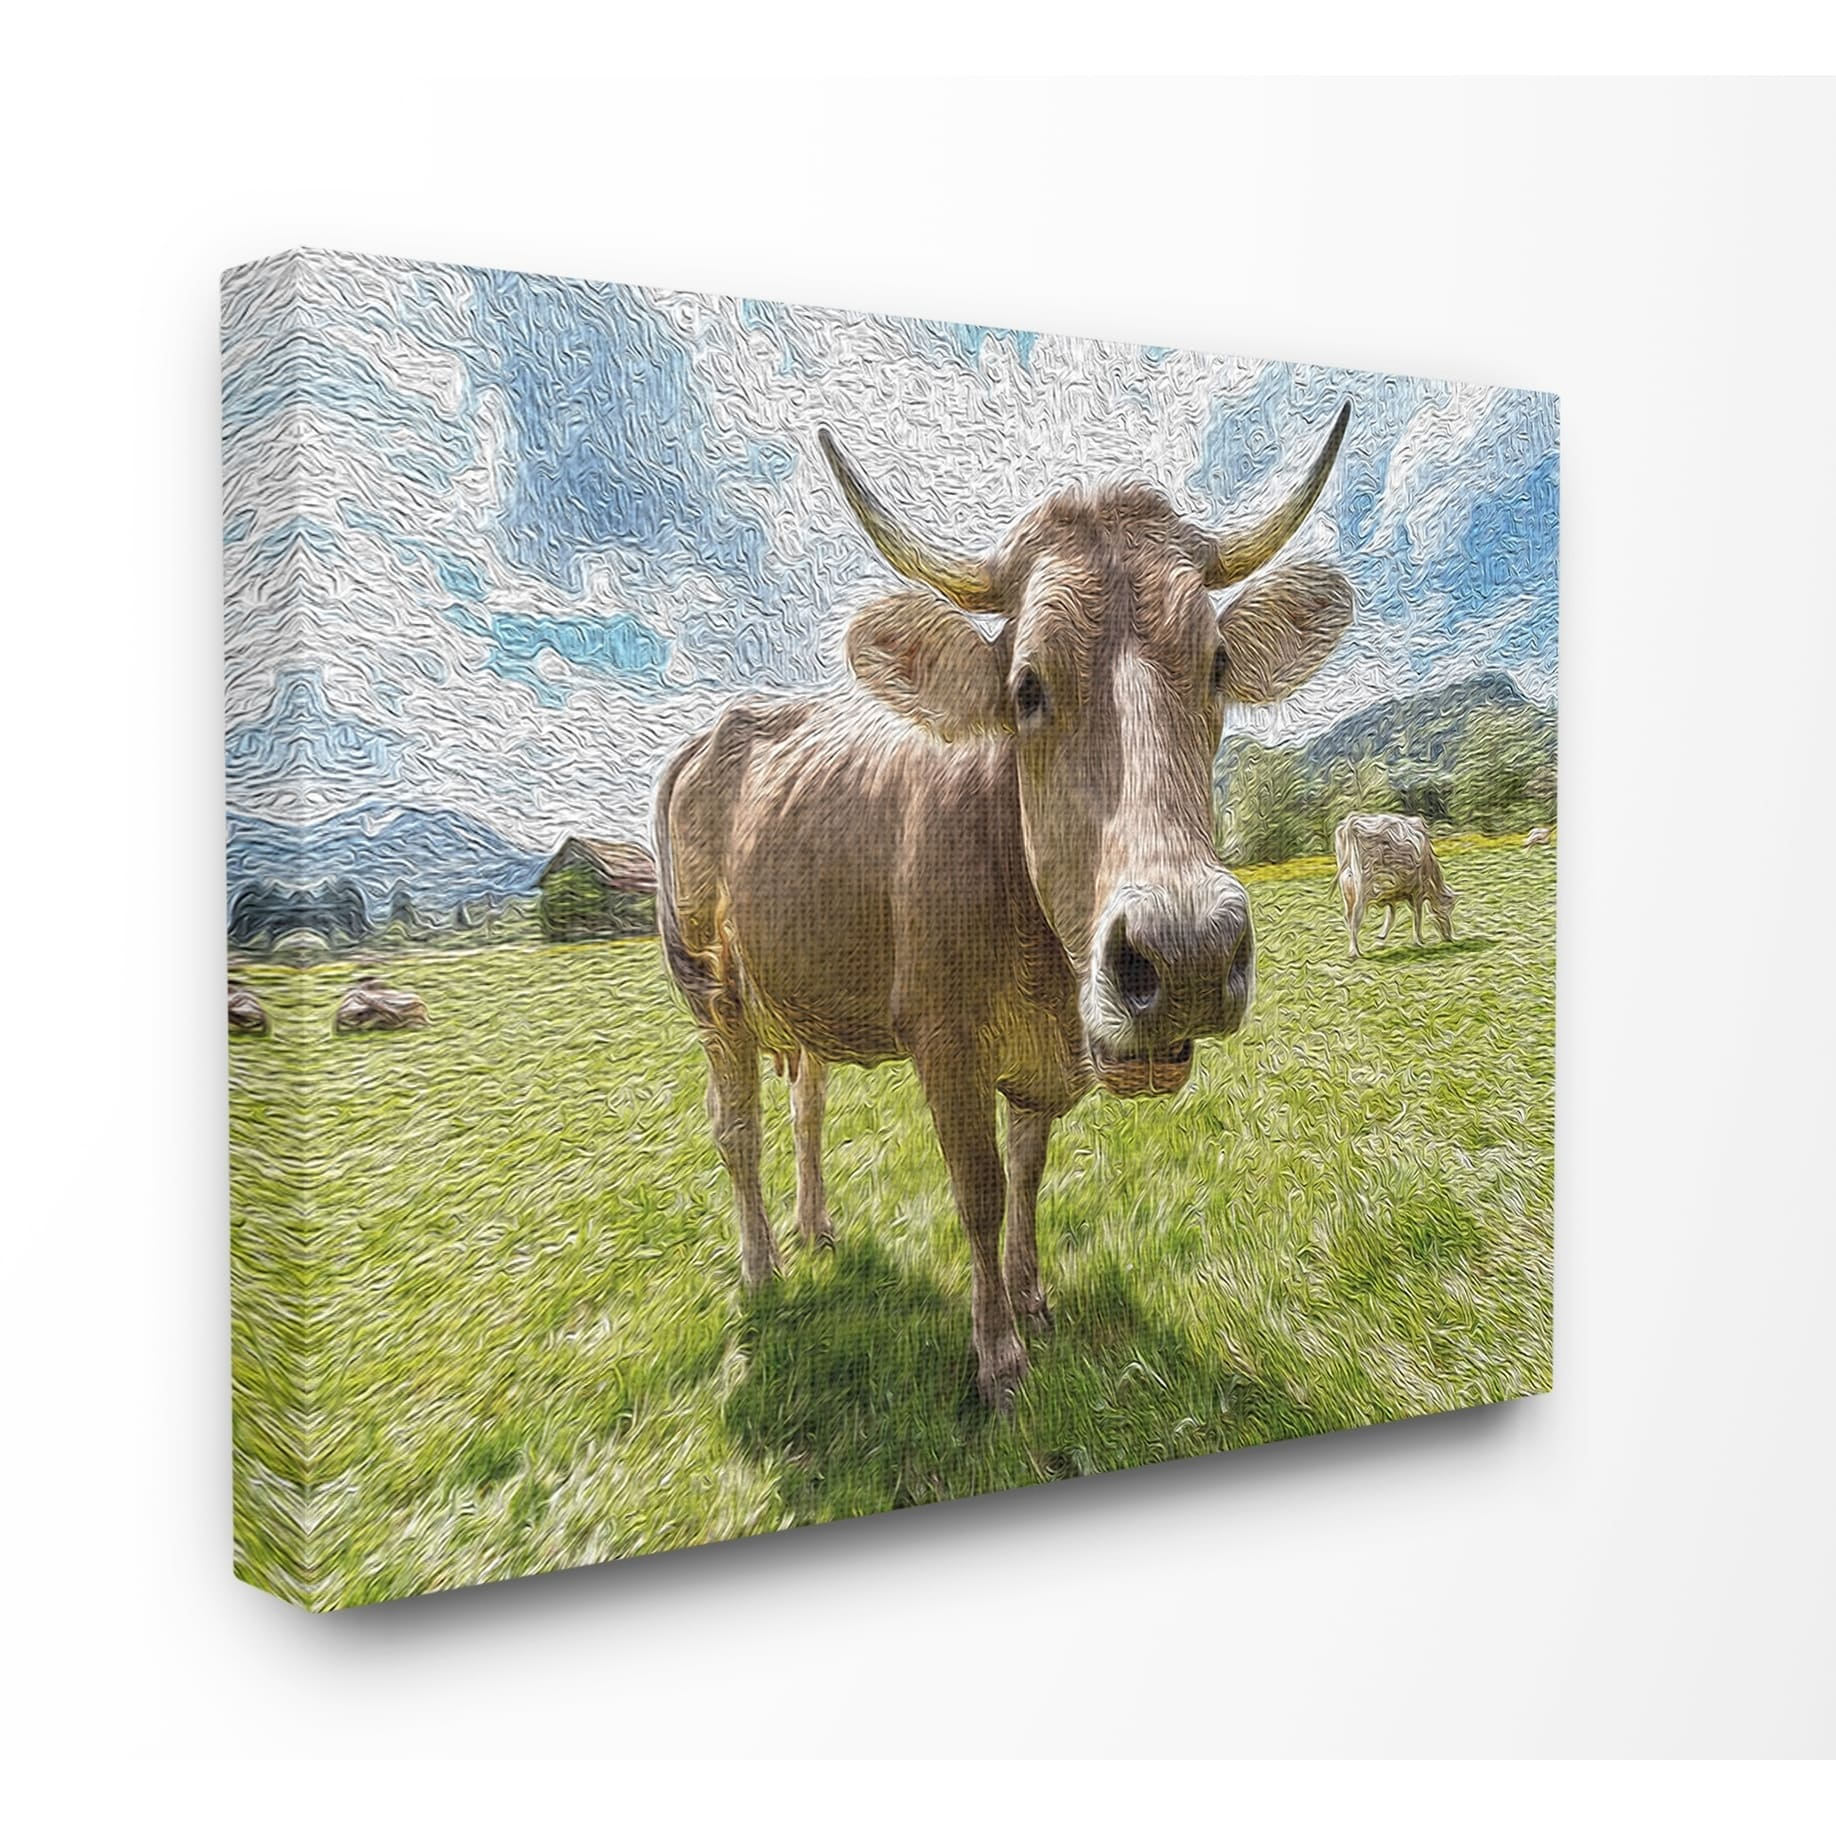 The Stupell Home Decor Fish Eye Swirled Look Cows In A Pasture Painting Canvas Wall Art 16 X 20 Proudly Made In Usa